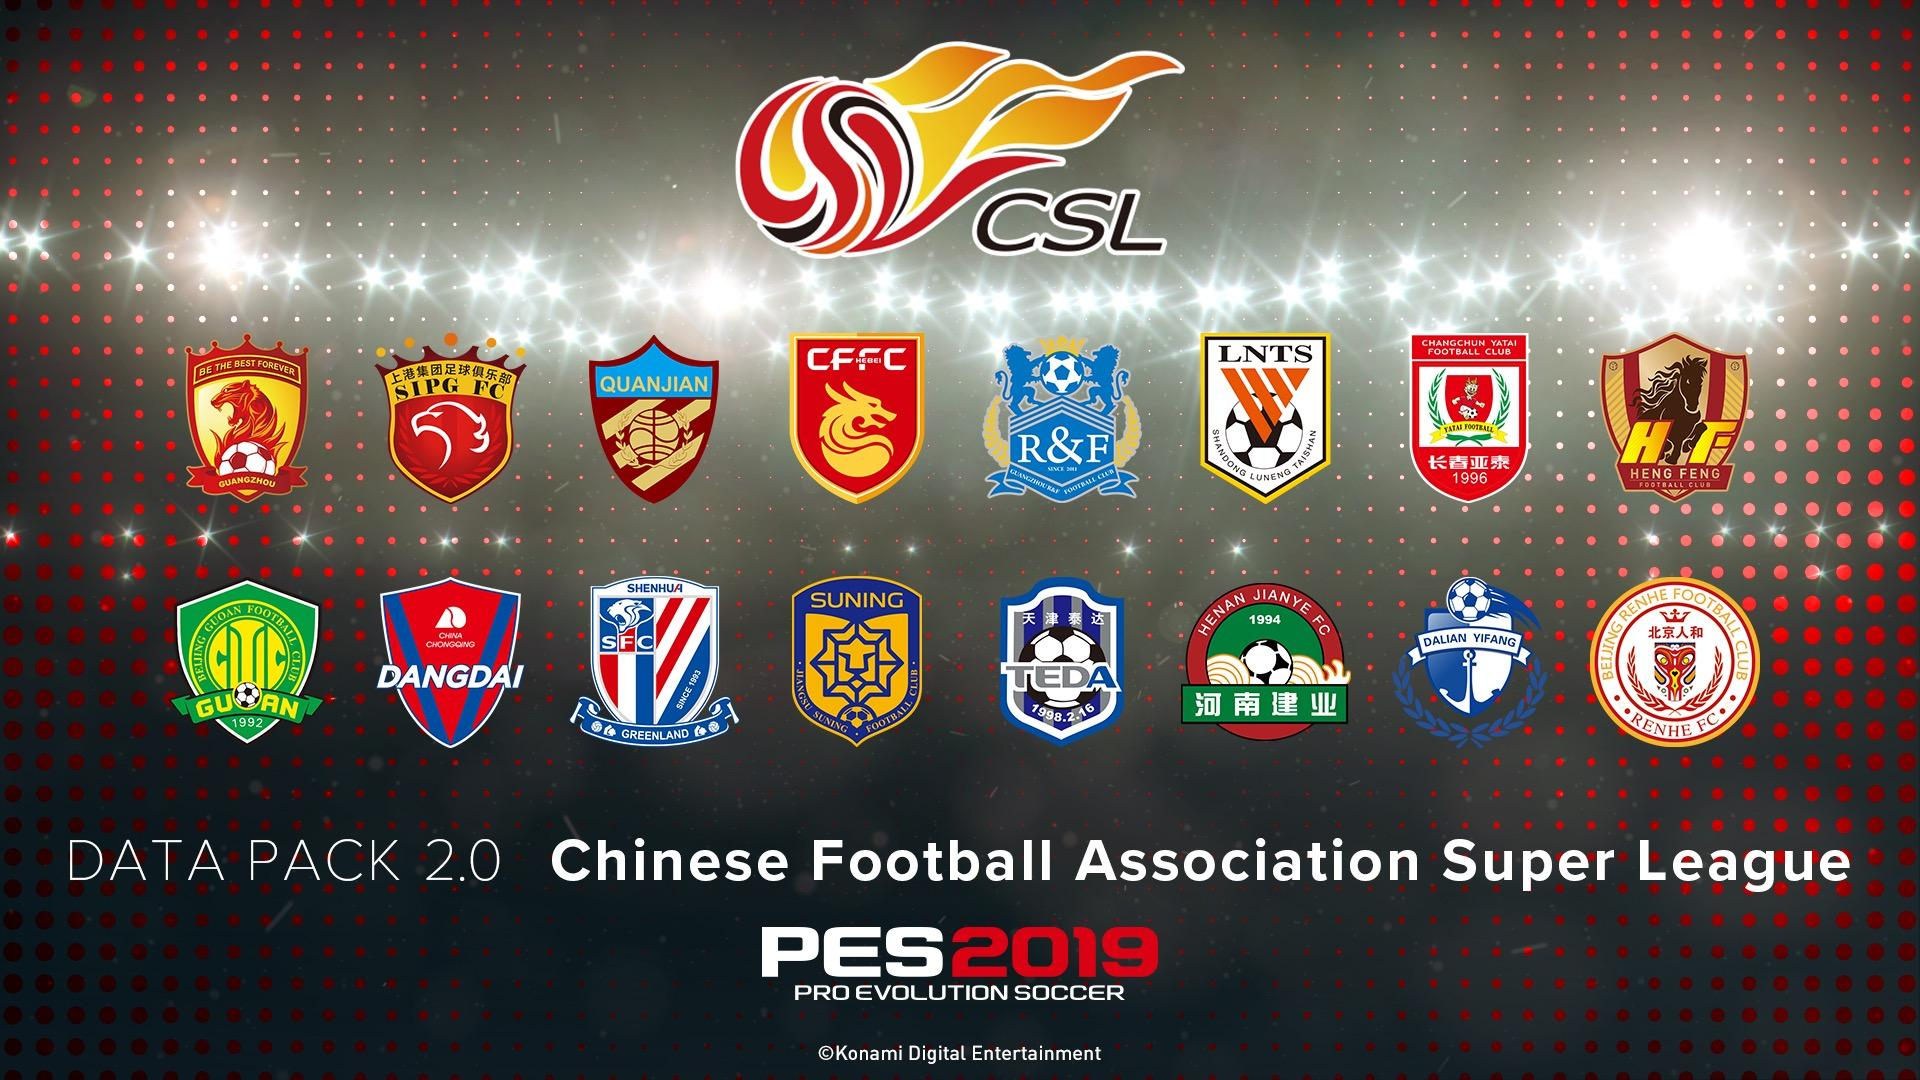 PES 2019 Data Pack 2 0 Adds 100 New Player Faces and